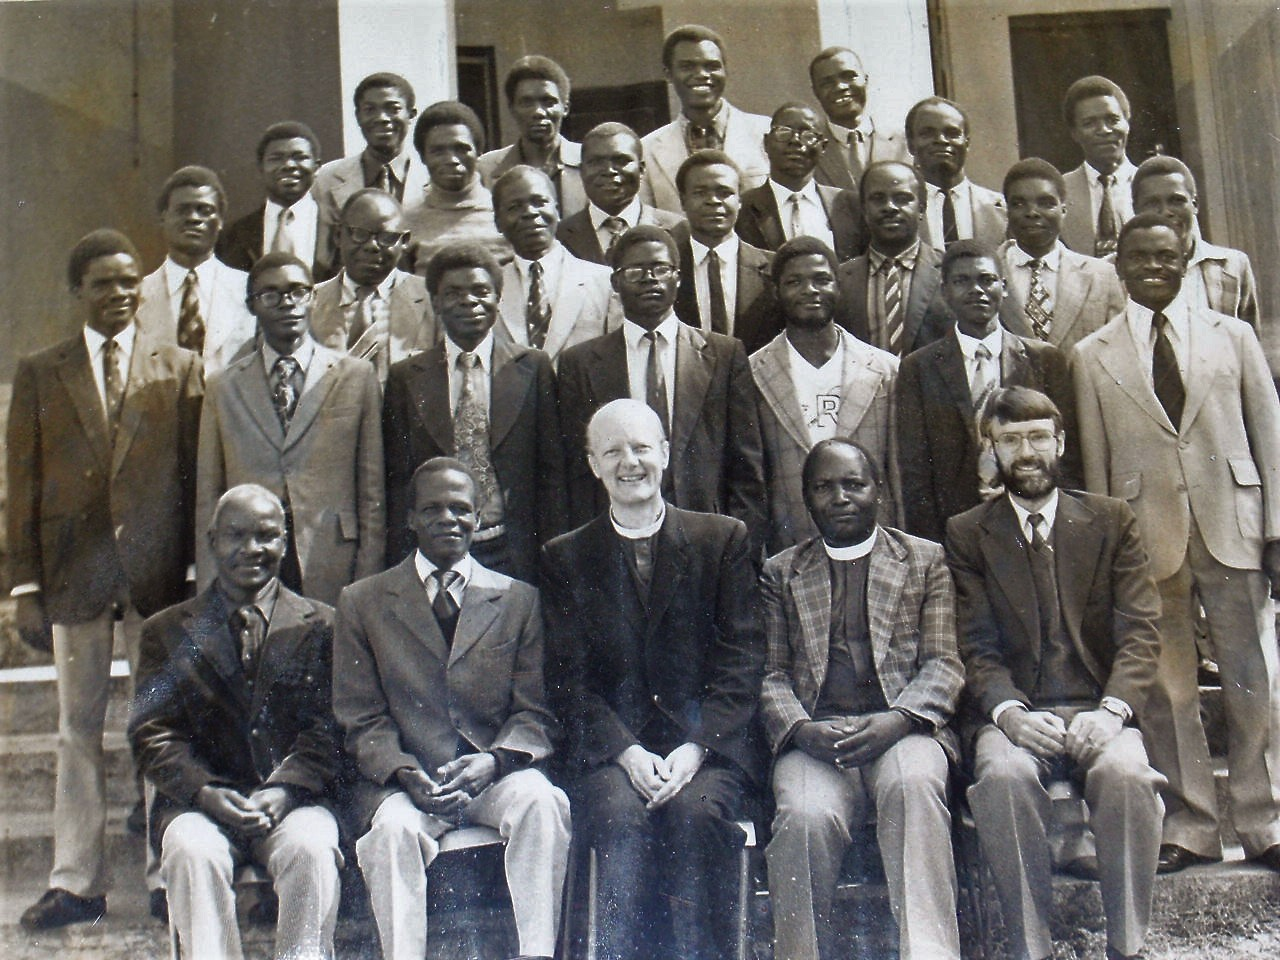 Dr. Chilenje with lecturers and classmates at Zomba College. He is in the third row from the front, the fourth person from the right.